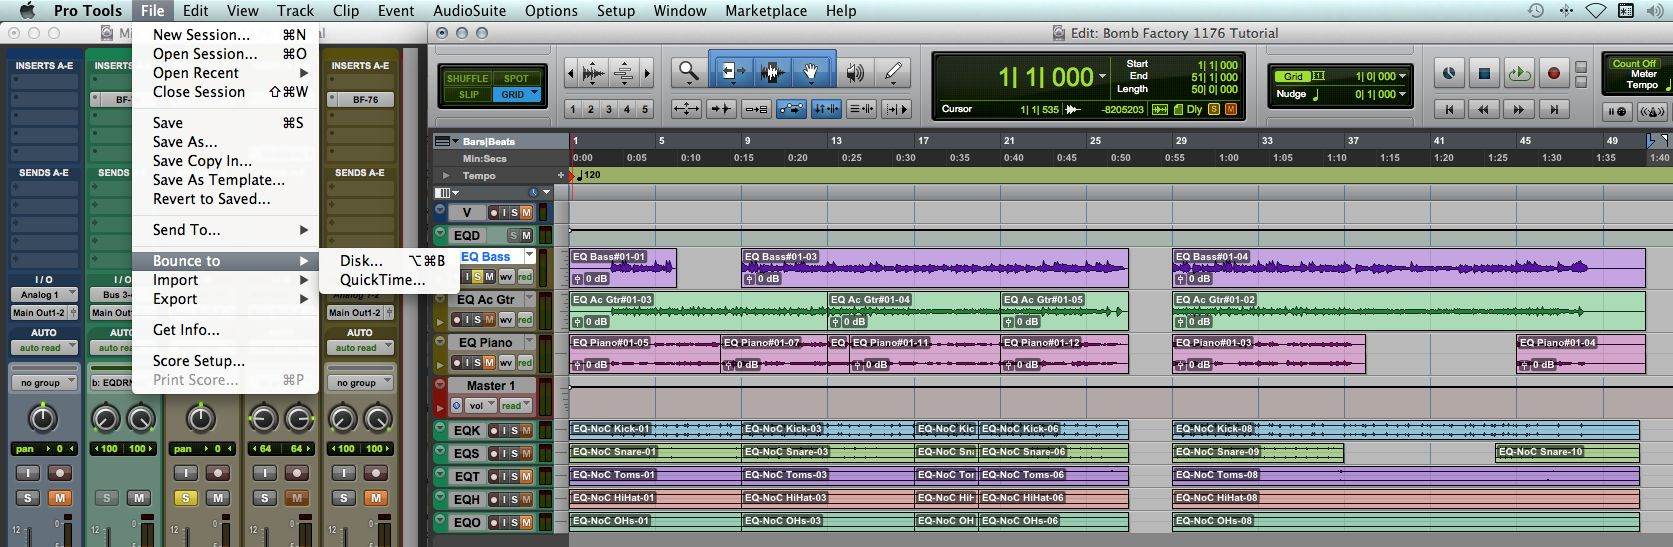 (Fig 4) Pro Tools File Menu